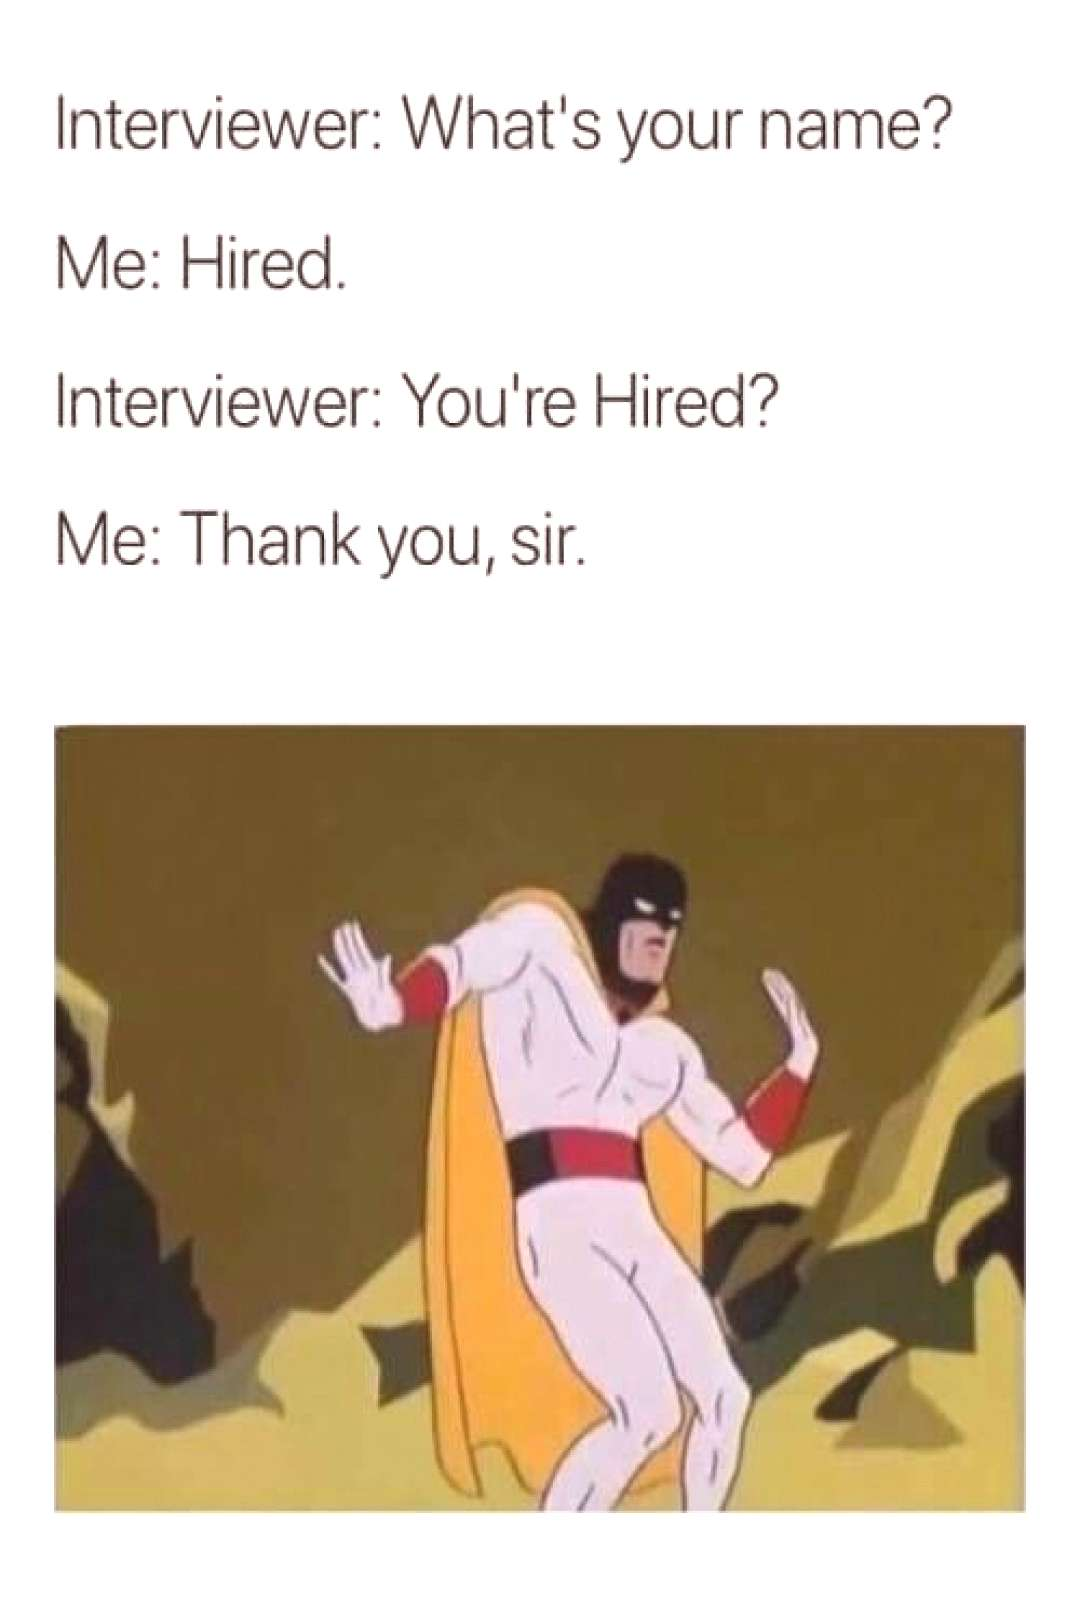 You are hired! You are hired! Thank you Sir!